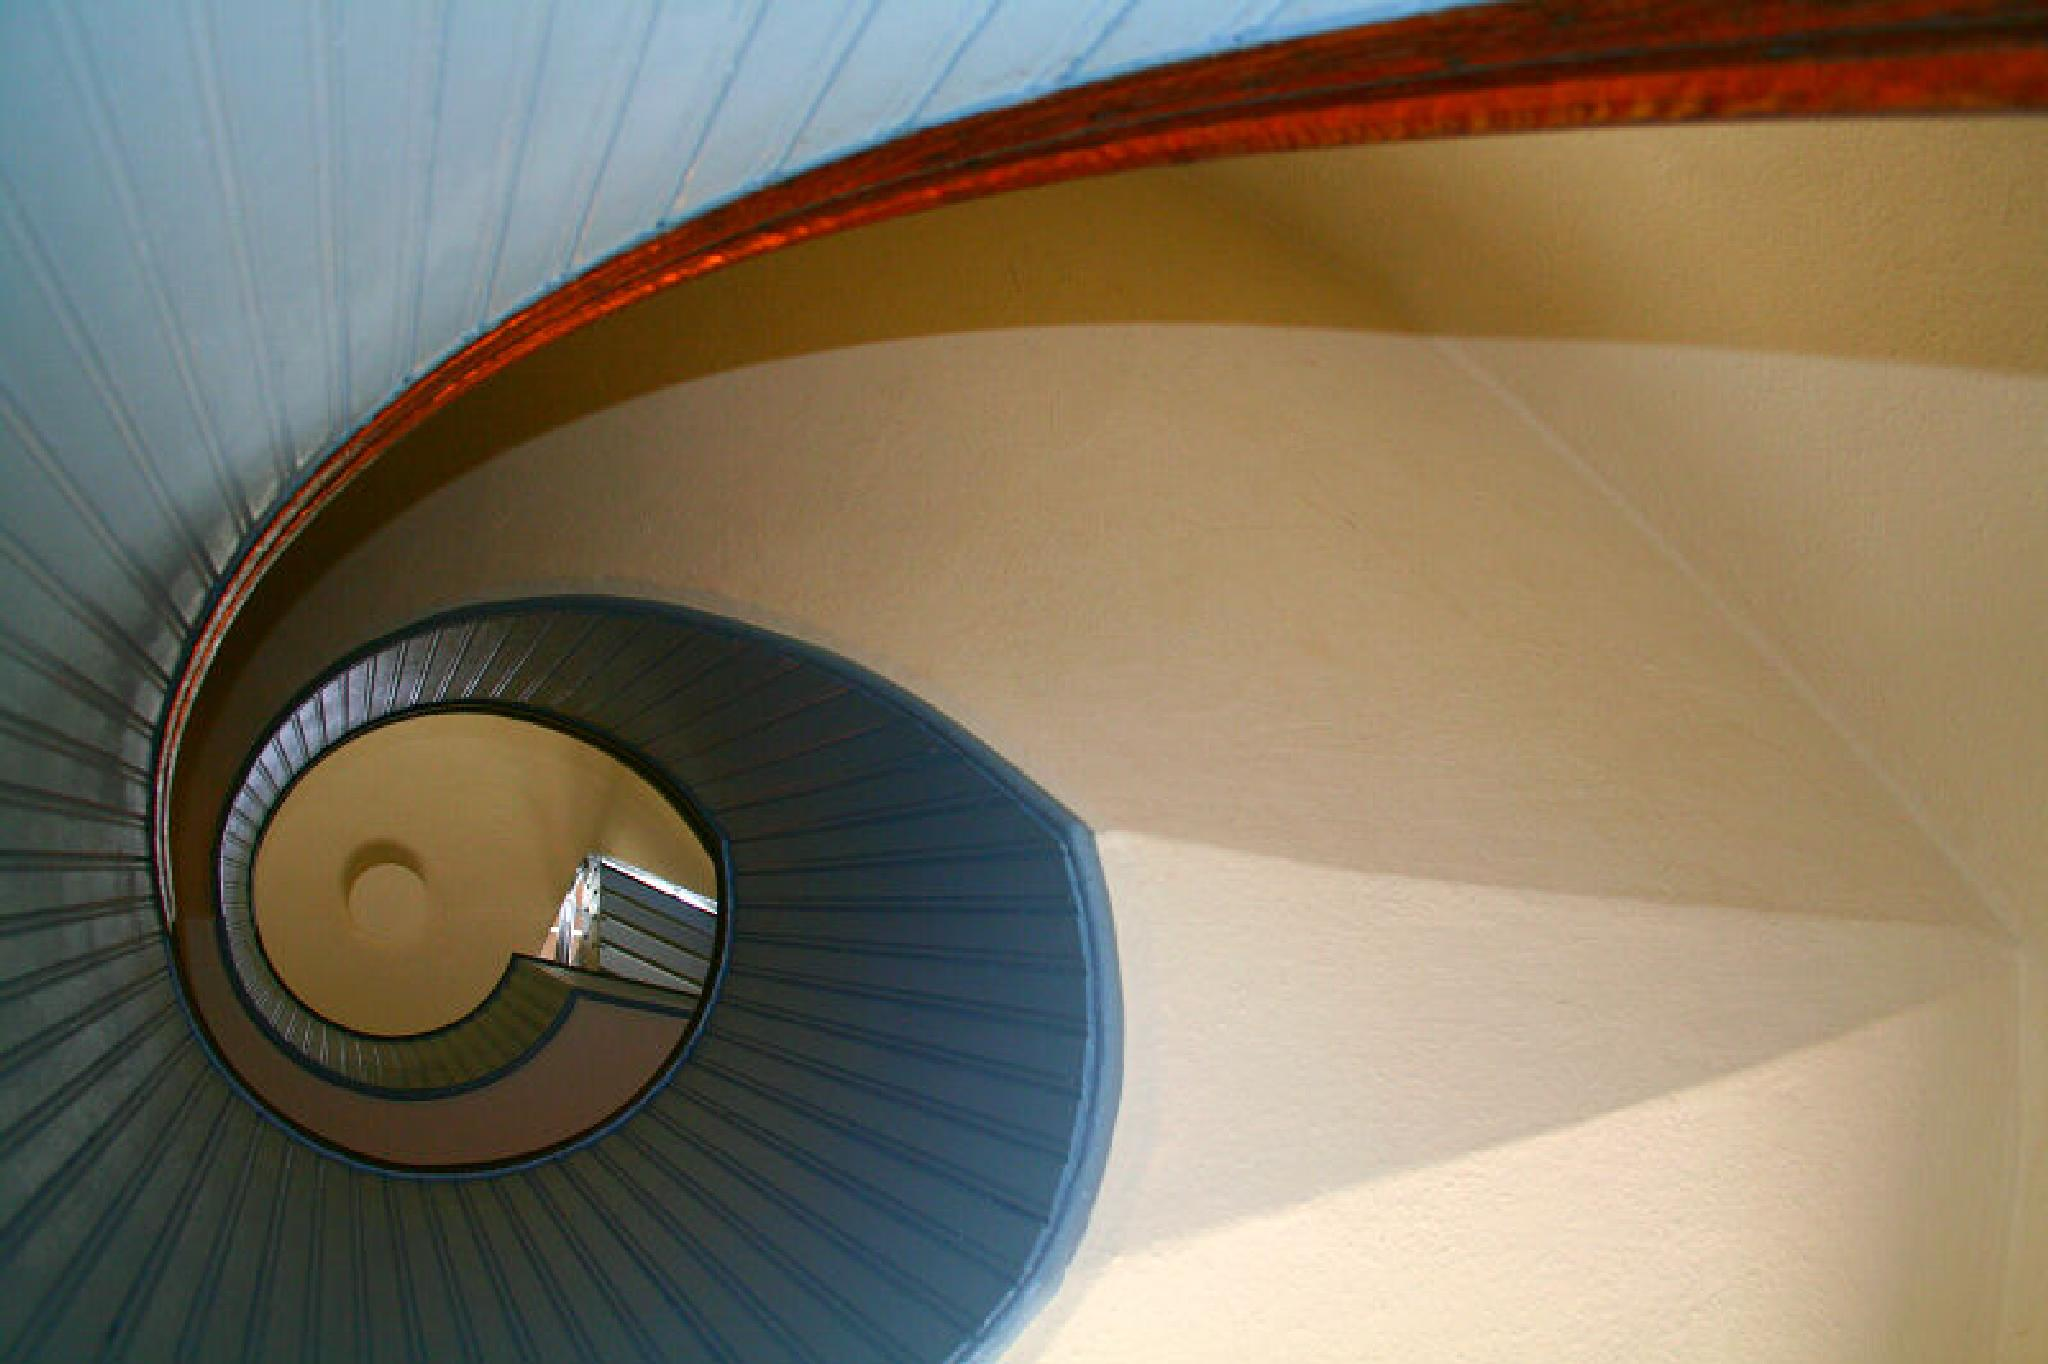 Spiral by king.chester0